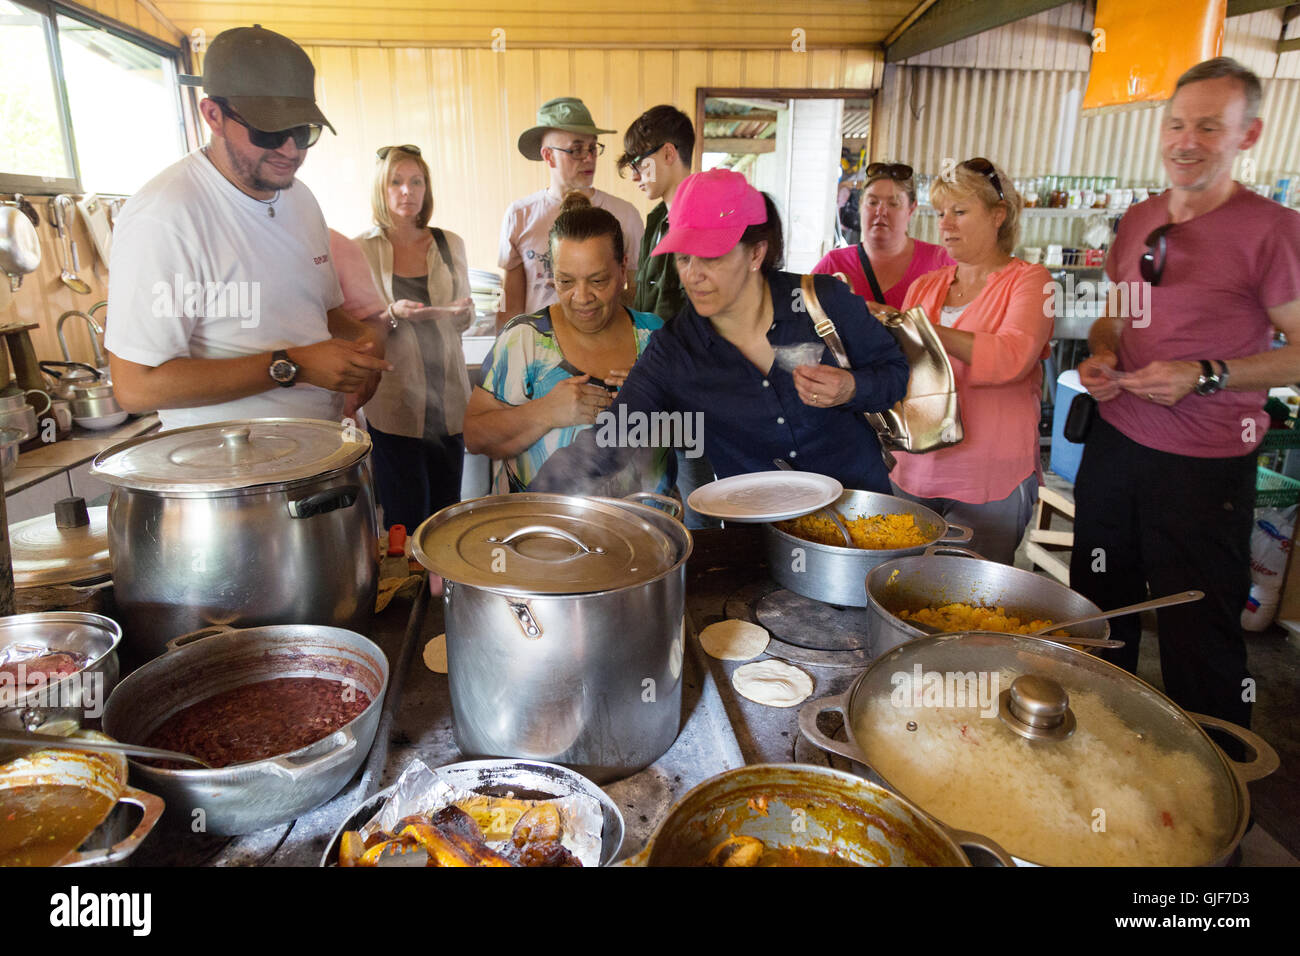 Tourists learning about local Costa Rican cooking and culture, Poas, Costa Rica, Central America - Stock Image